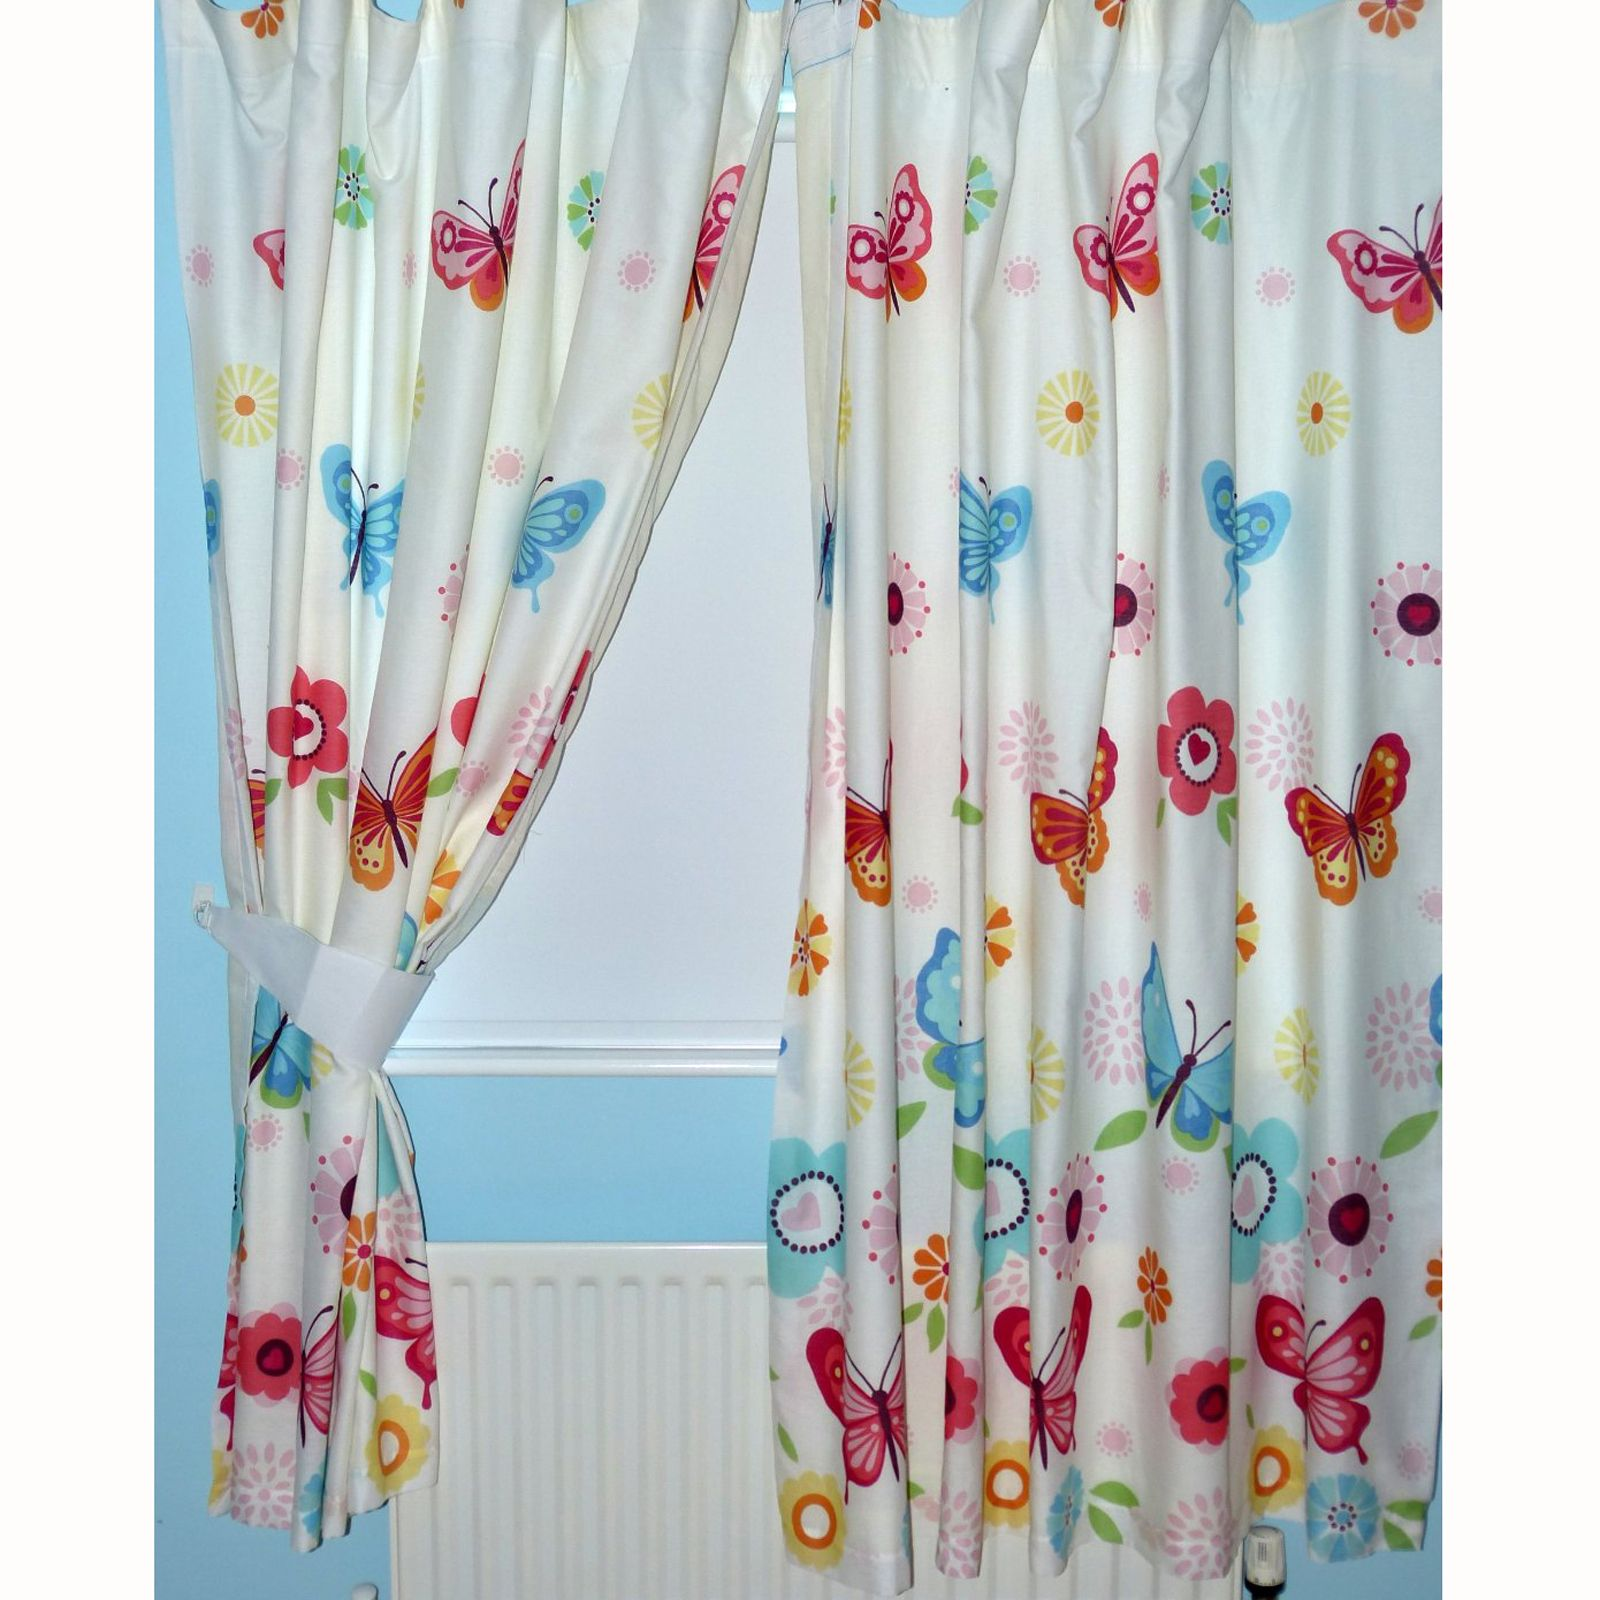 "Girls bedroom curtains in various designs 66"" x 72"" fully lined ..."